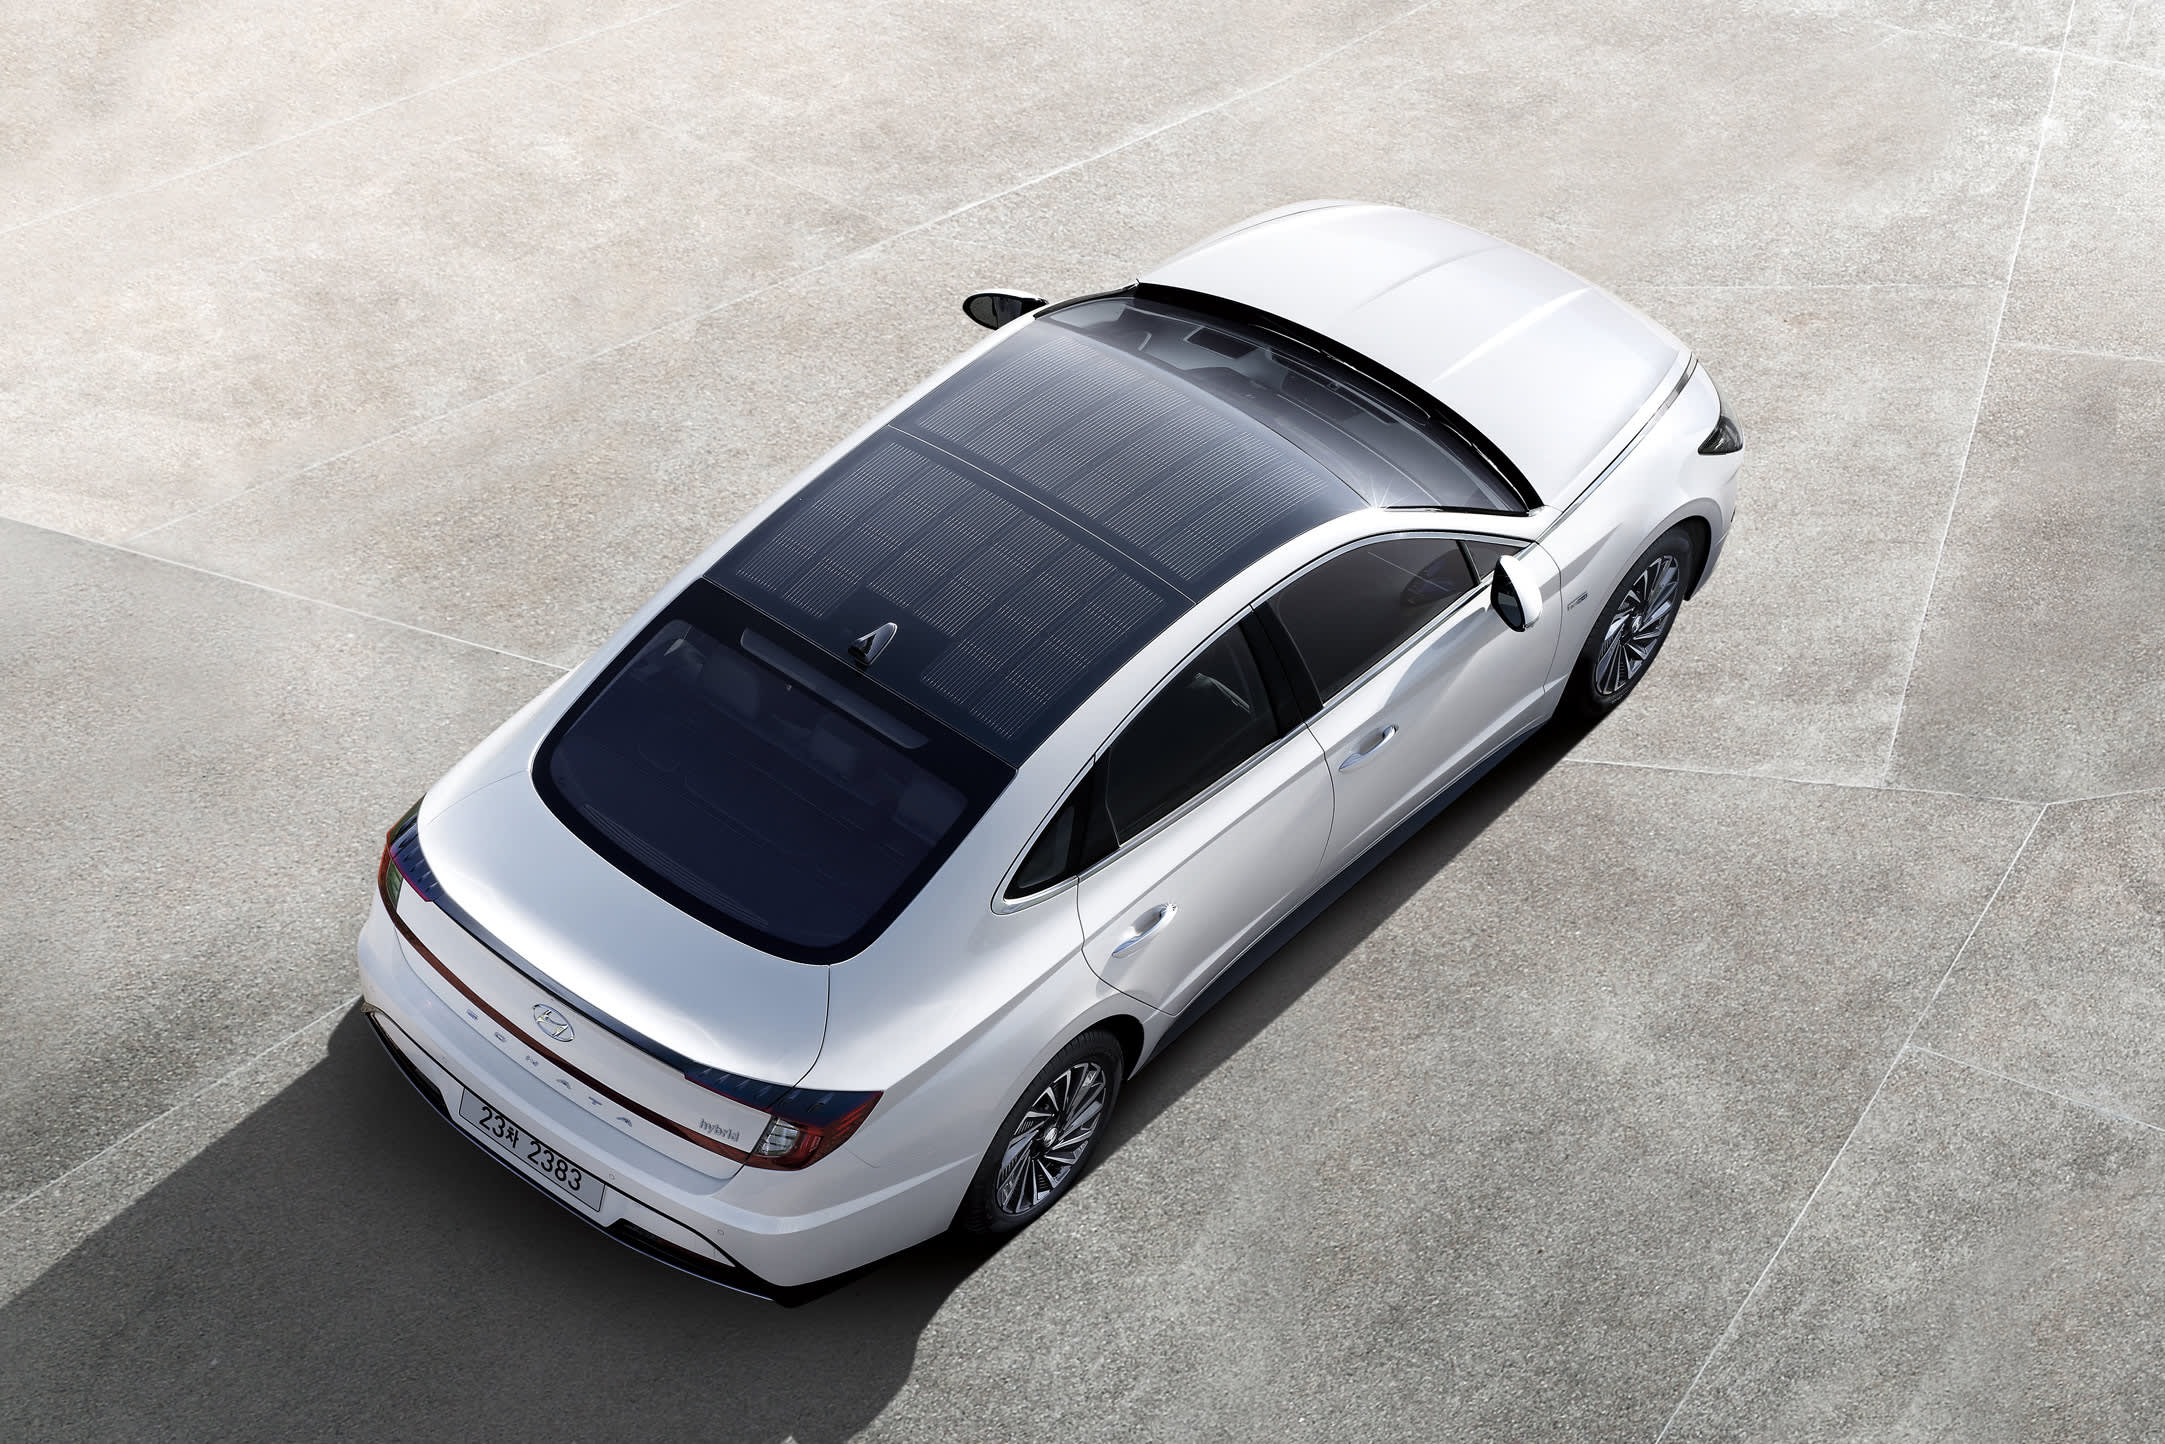 Hyundai launches car with a roof-based solar charging system